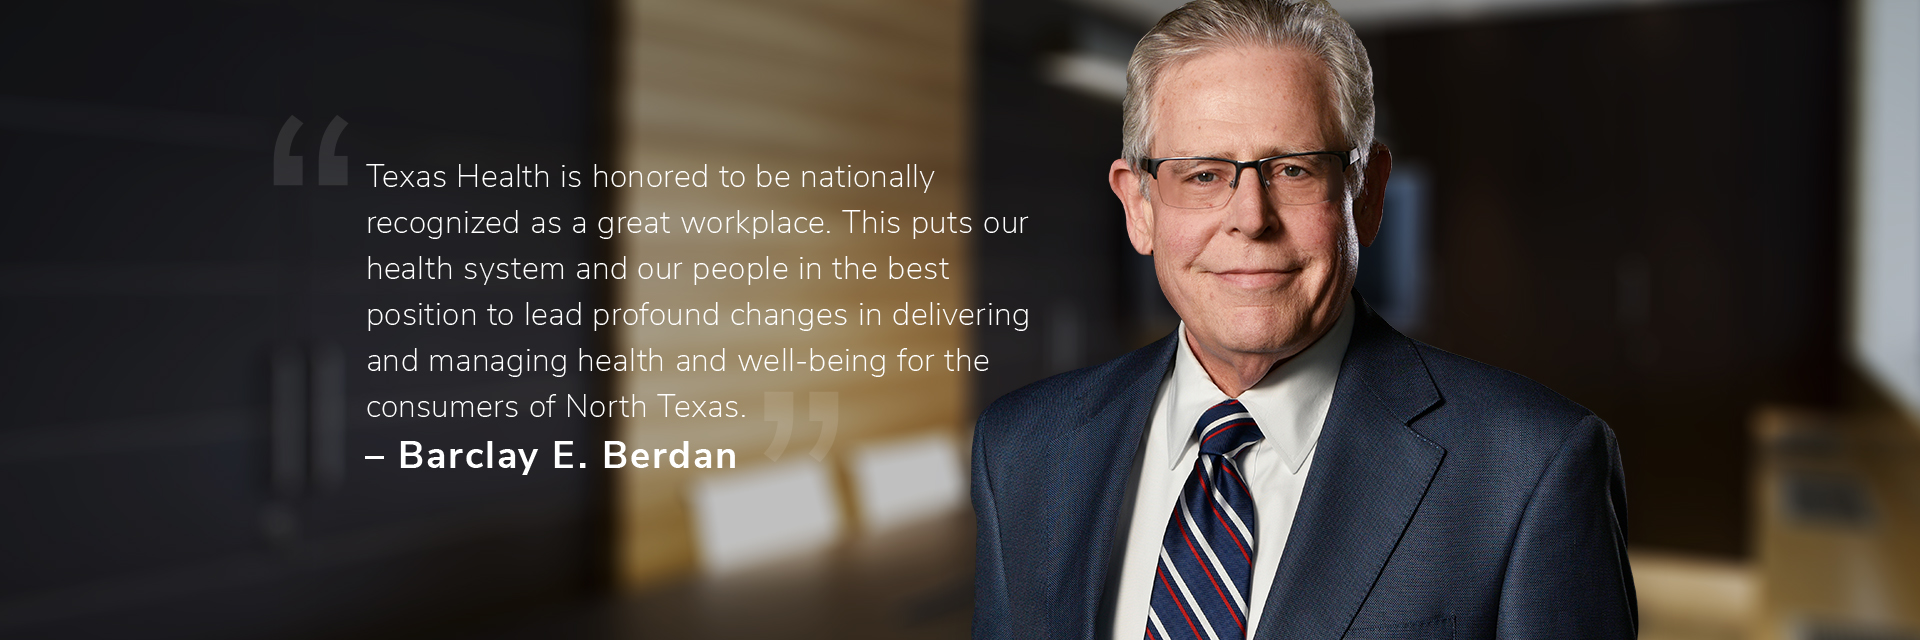 Barclay E. Berdan: Texas Health is honored to be nationally recognized as a great workplace. This puts our health system and our people in the best position to lead profound changes in delivering and managing health and well-being for the consumers of North Texas.""